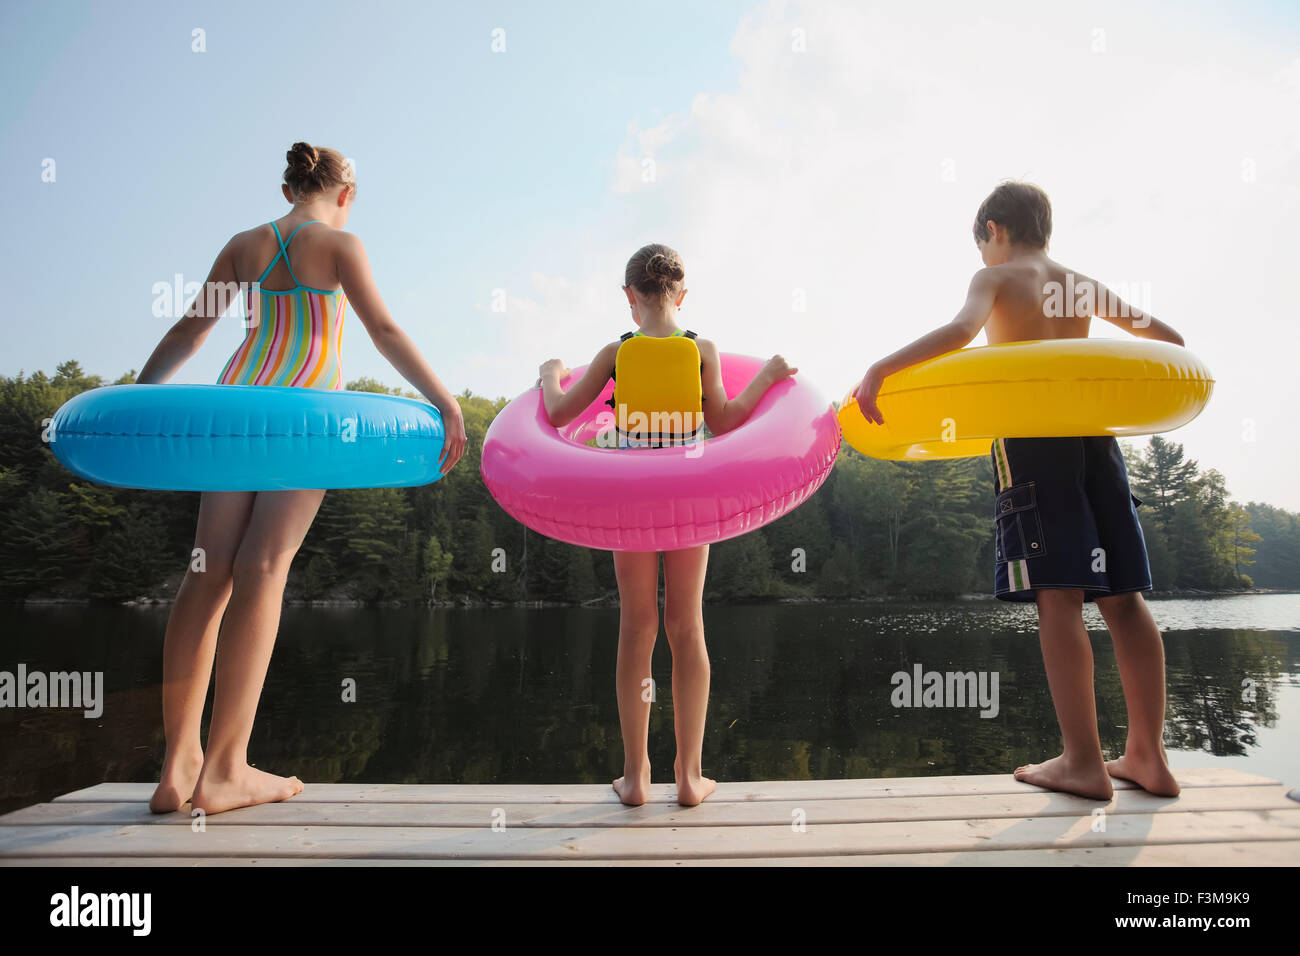 Girl,Jetty,Inflatable,Boy,Lake,Rubber Ring - Stock Image